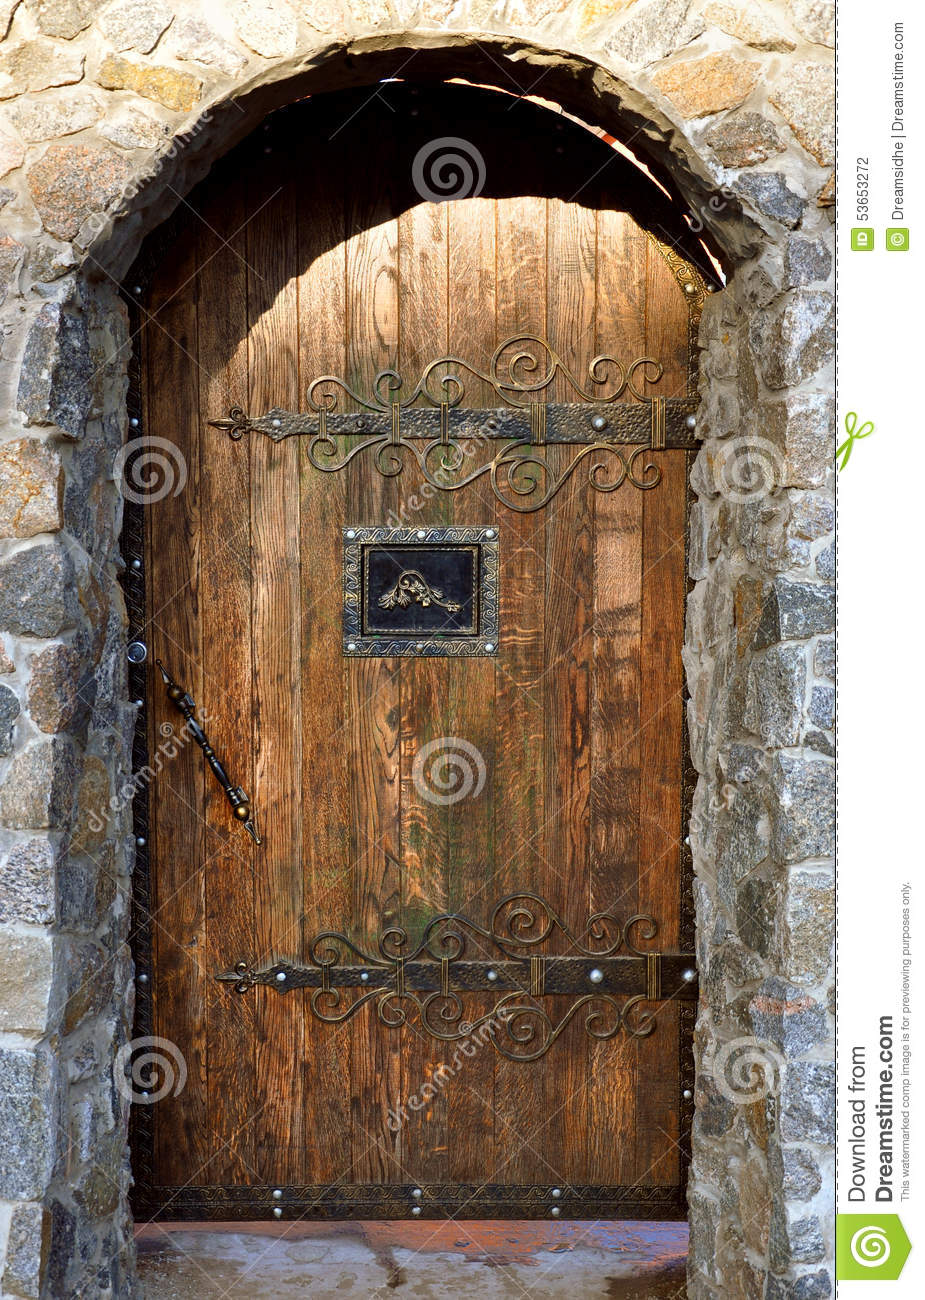 Brick Arch With Wooden Doors Stock Photo